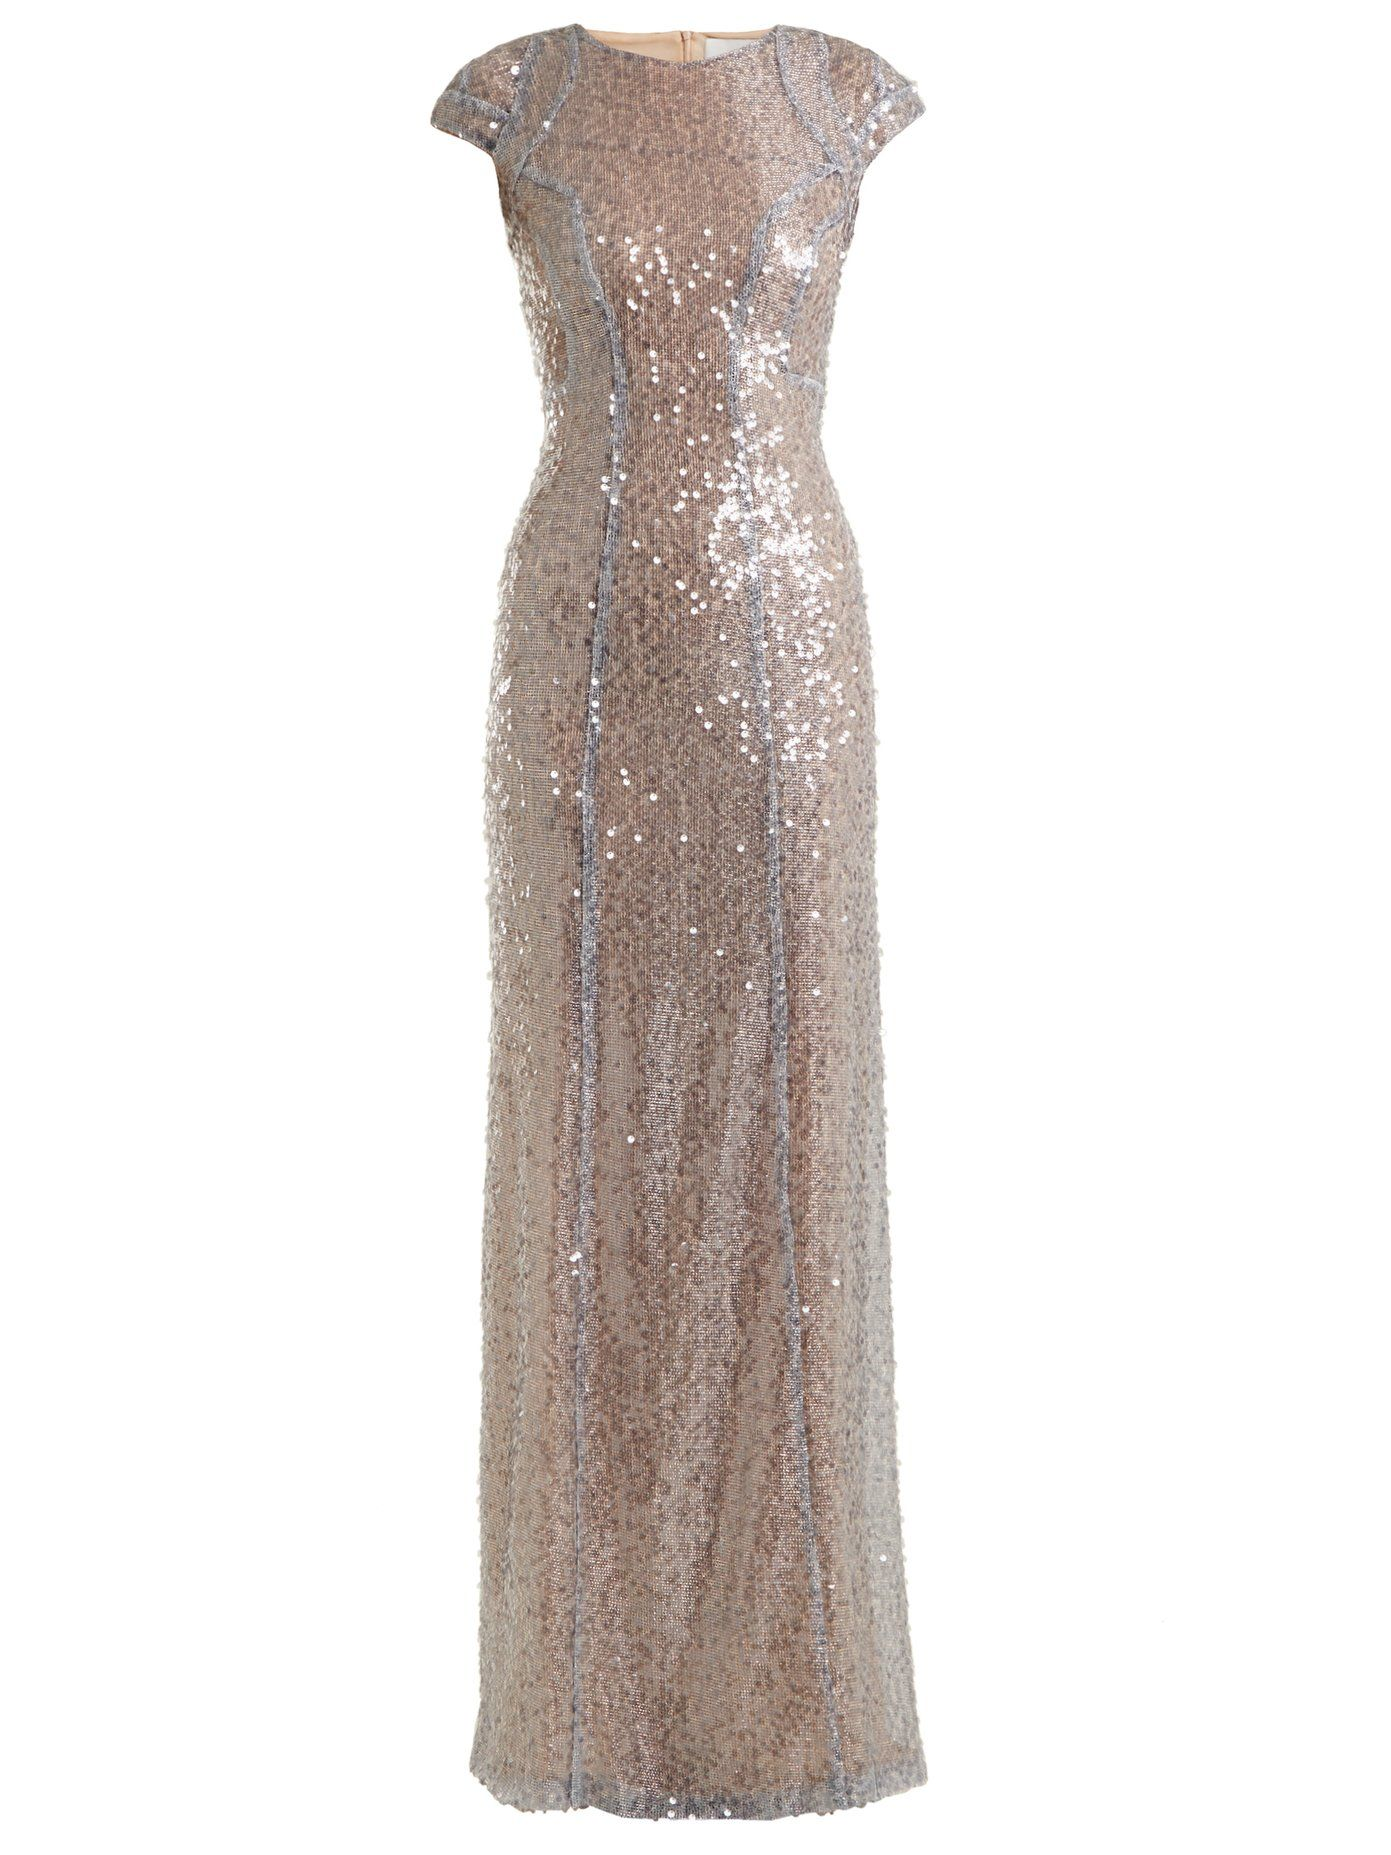 Galvan Estrella cap-sleeved sequin-embellished gown | Dresses ...